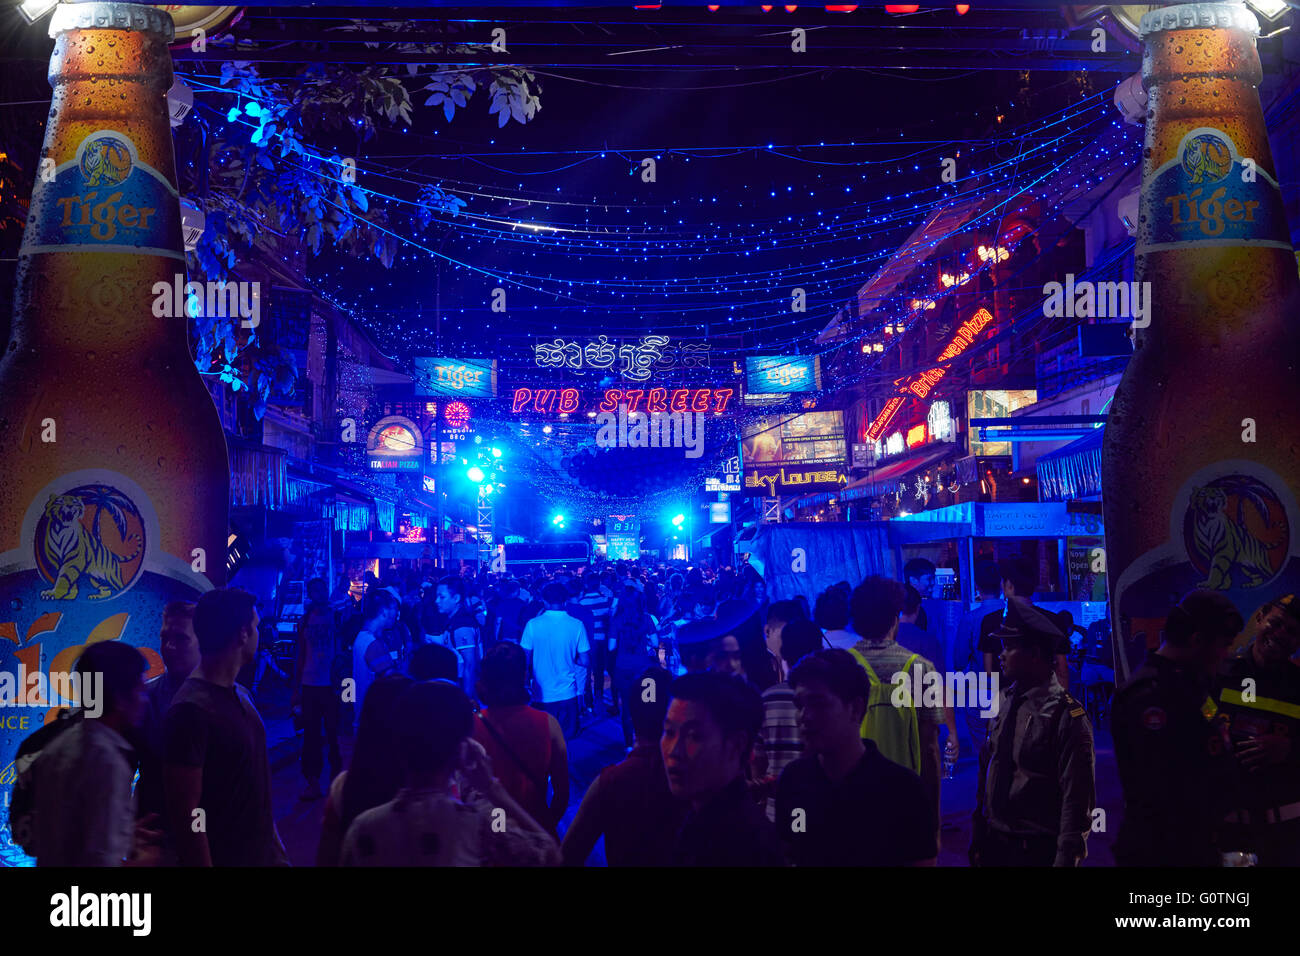 New Year's Eve Party in Pub Street, Siem Reap, Cambodia - Stock Image